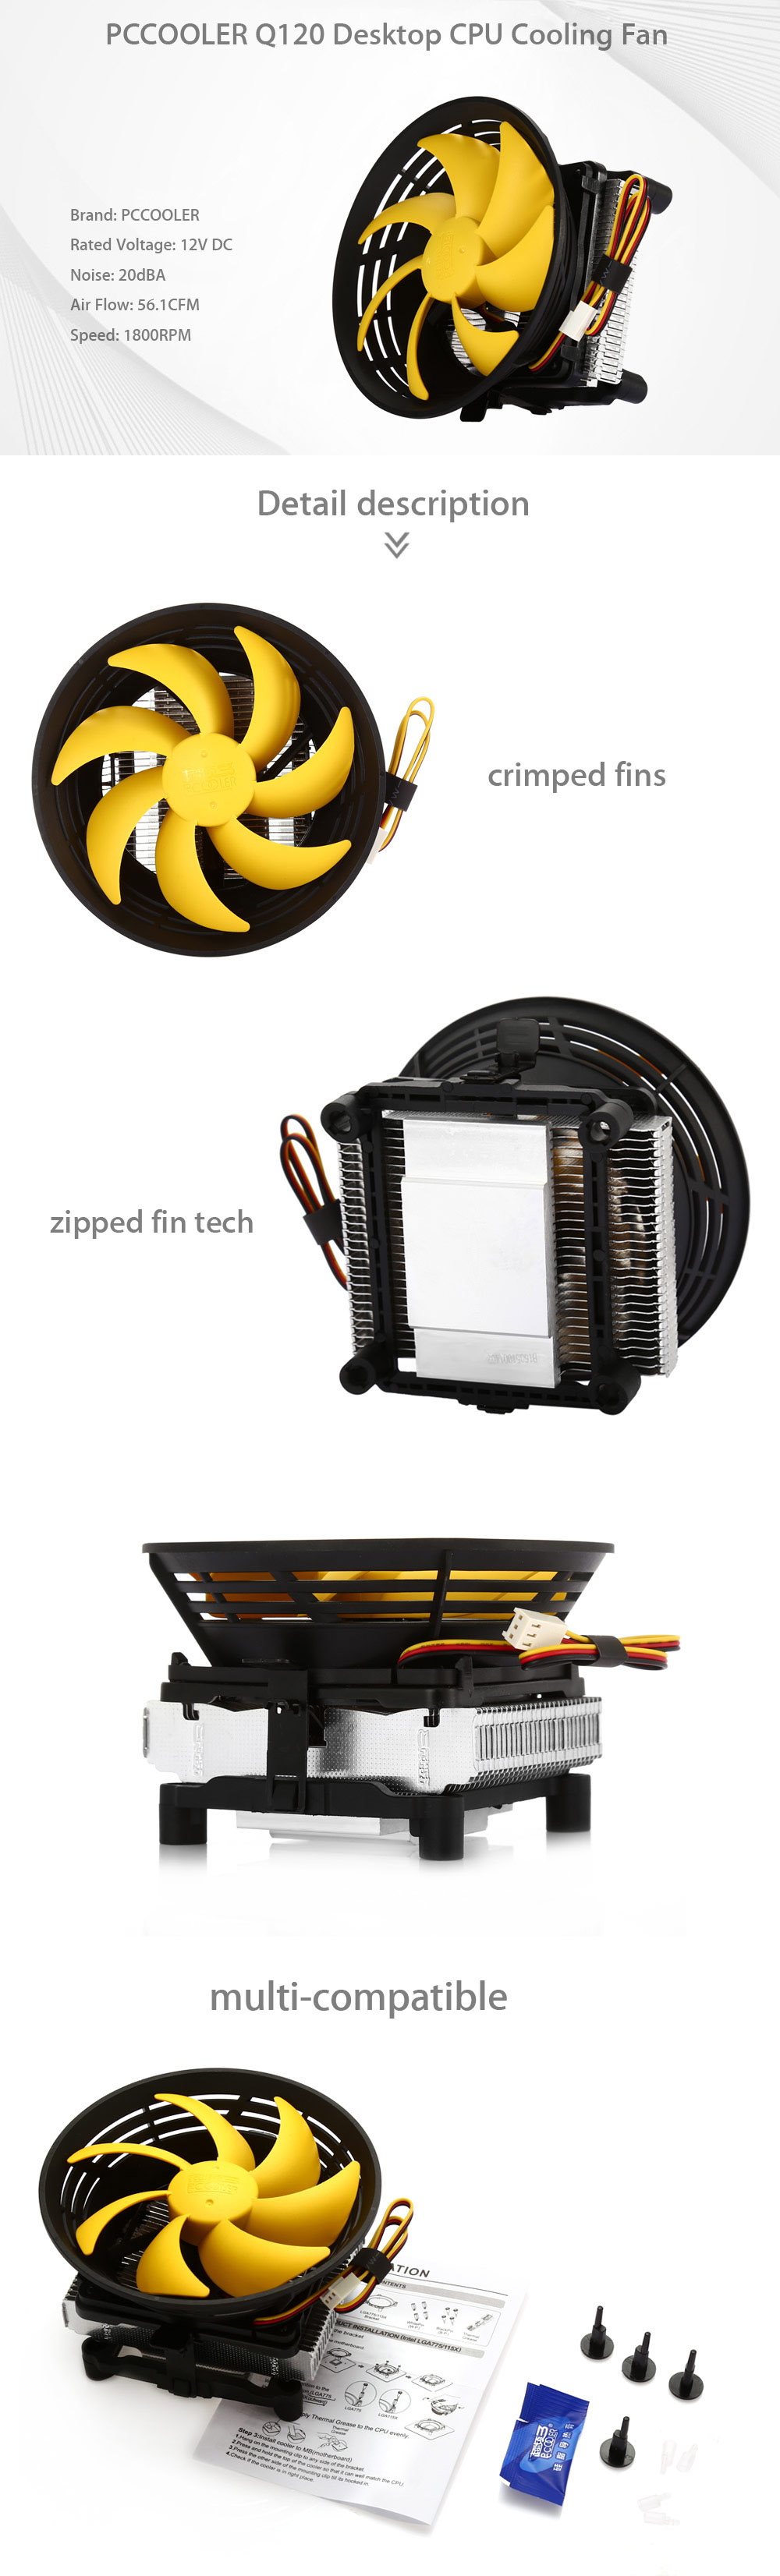 PCCOOLER Q120 Desktop CPU Cooling Fan Temperature Controller with Fin Compressed Technology